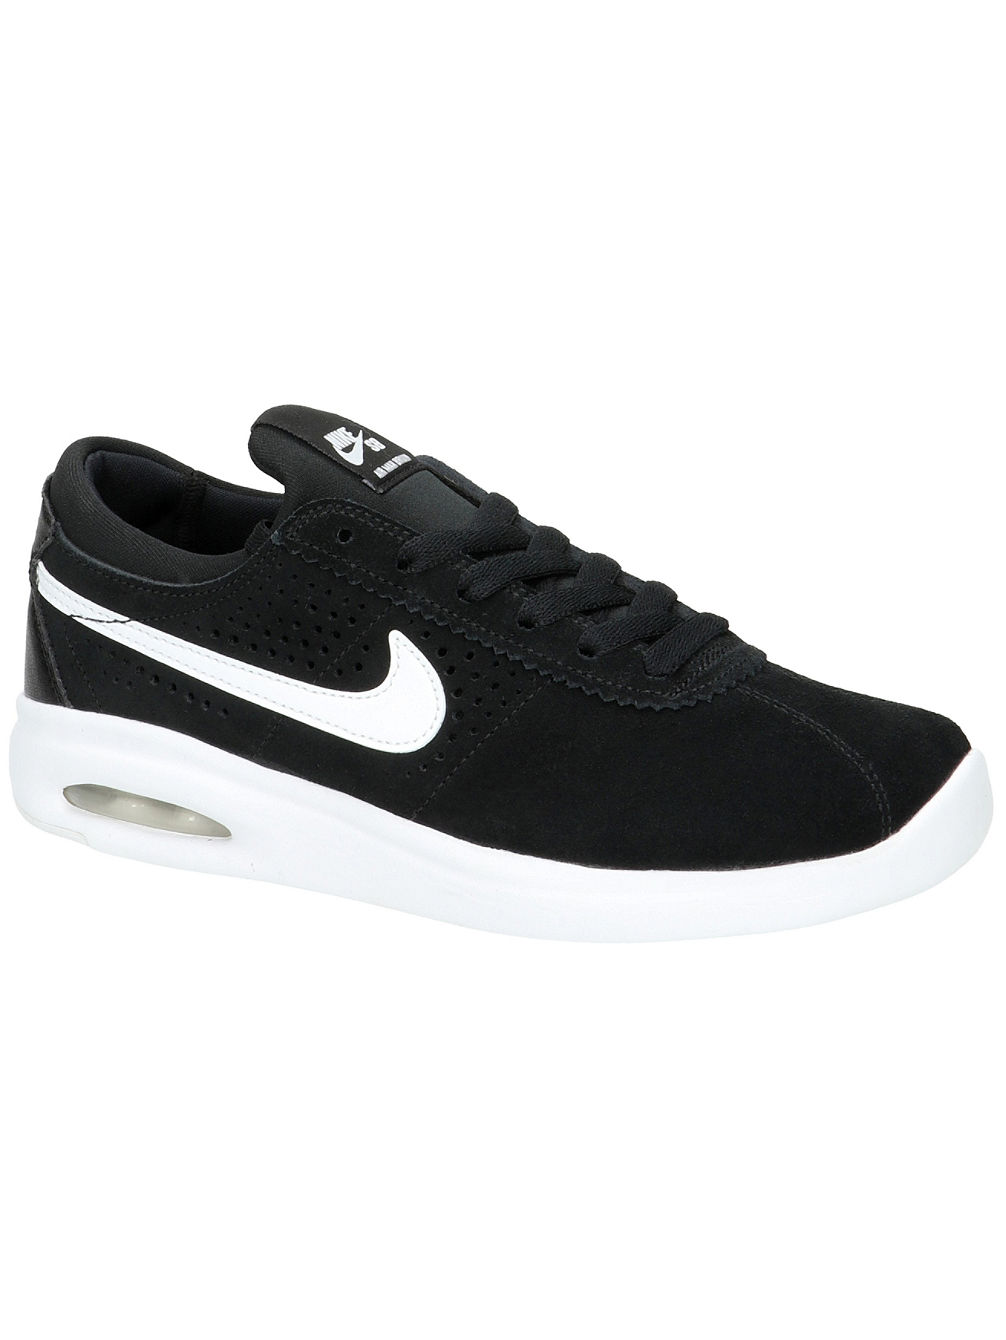 Air Max Bruin Vapor Leather (GS) Skate Shoes